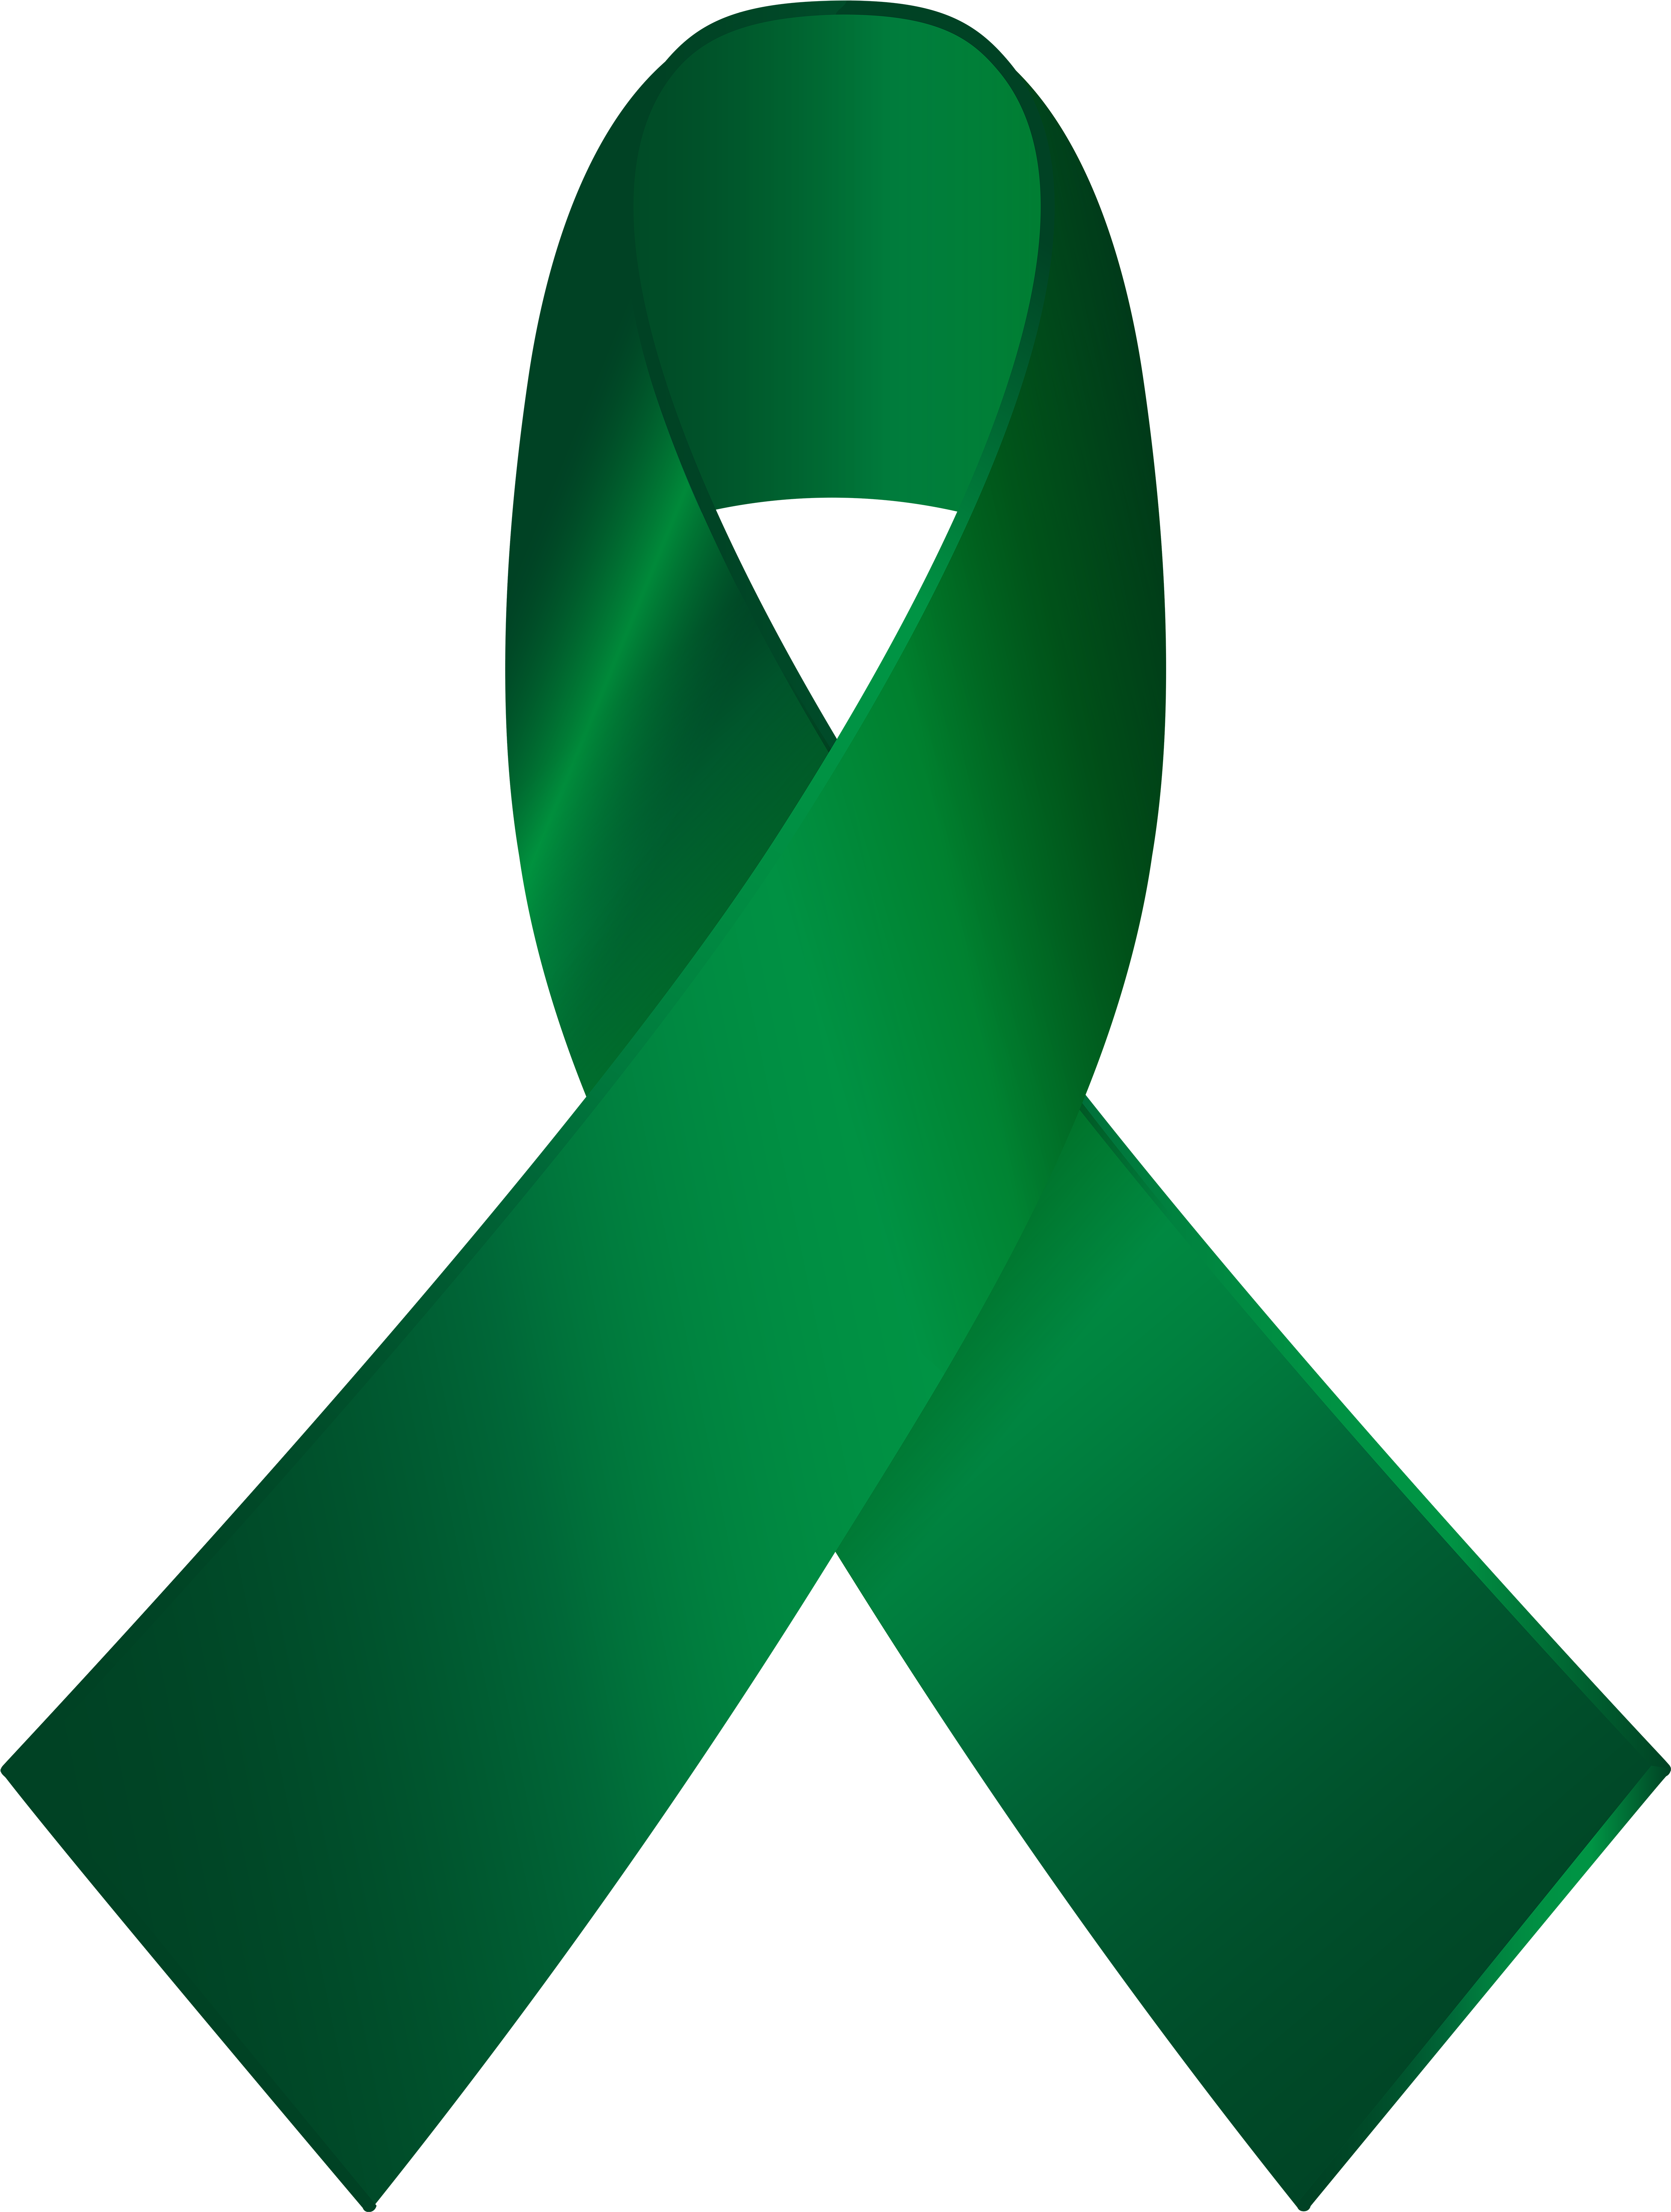 Green Awareness Ribbon Png Clip Art.